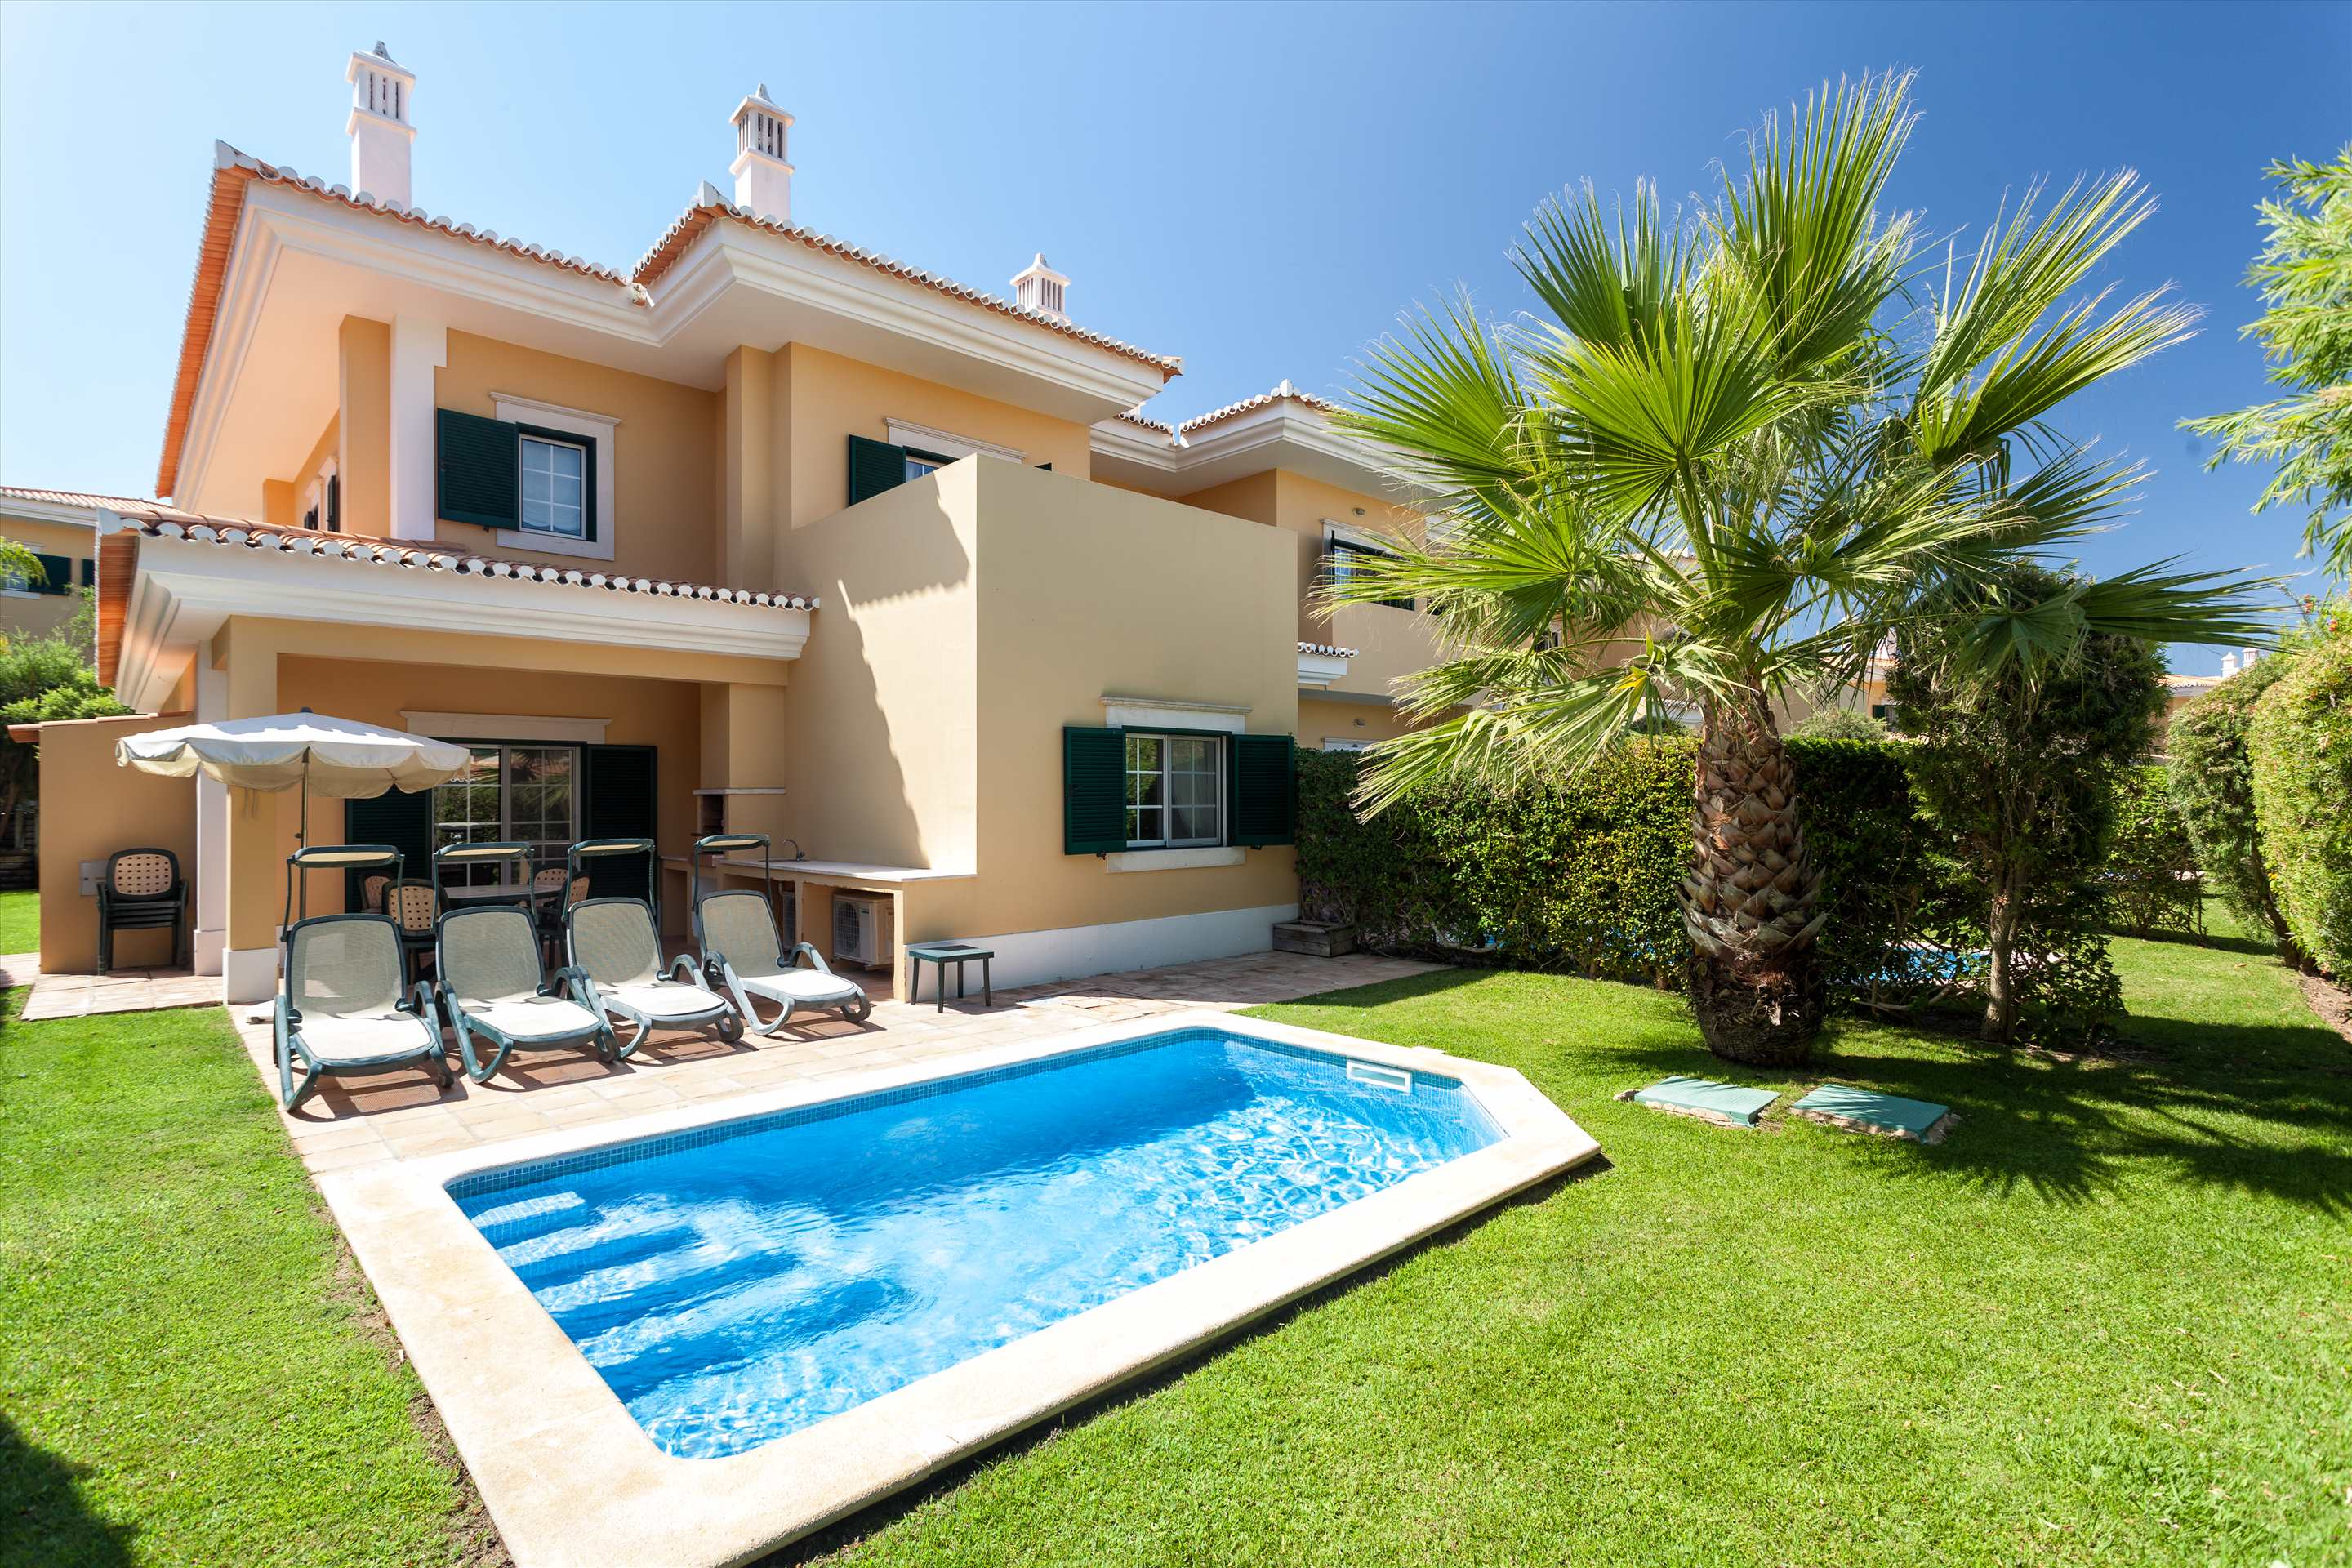 Martinhal Quinta Townhouse (3 Bedroom), 3 bedroom villa in Martinhal Quinta Resort, Algarve